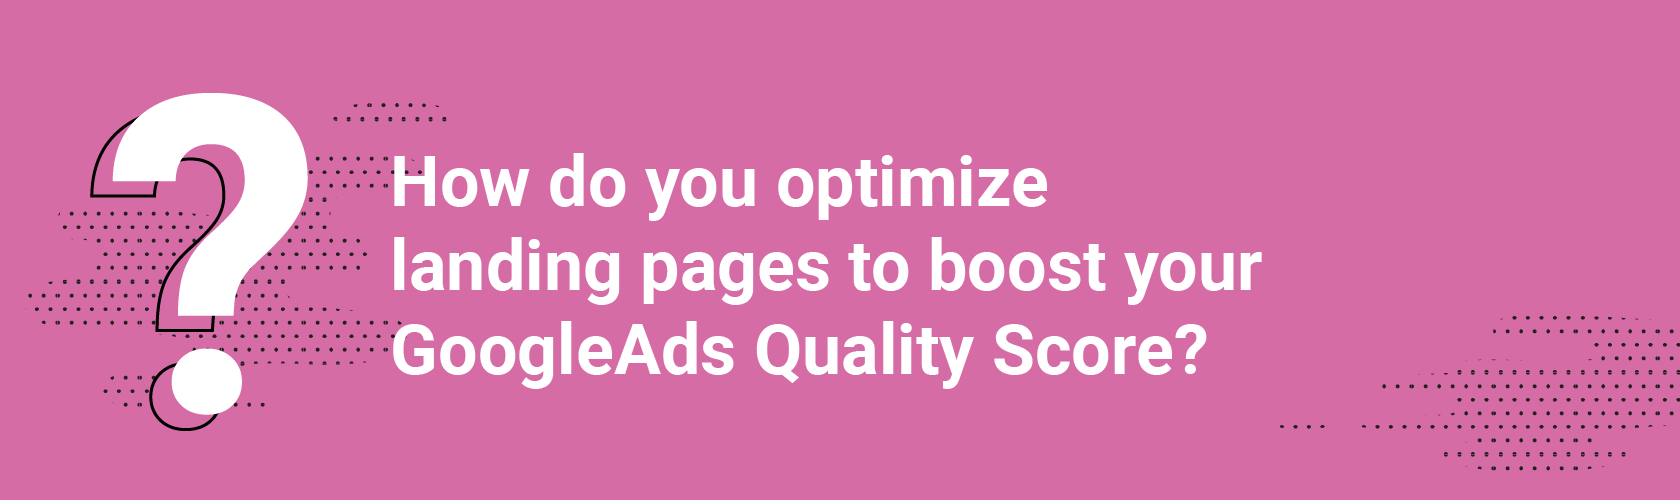 How do you optimize landing pages to boost your GoogleAds Quality Score?